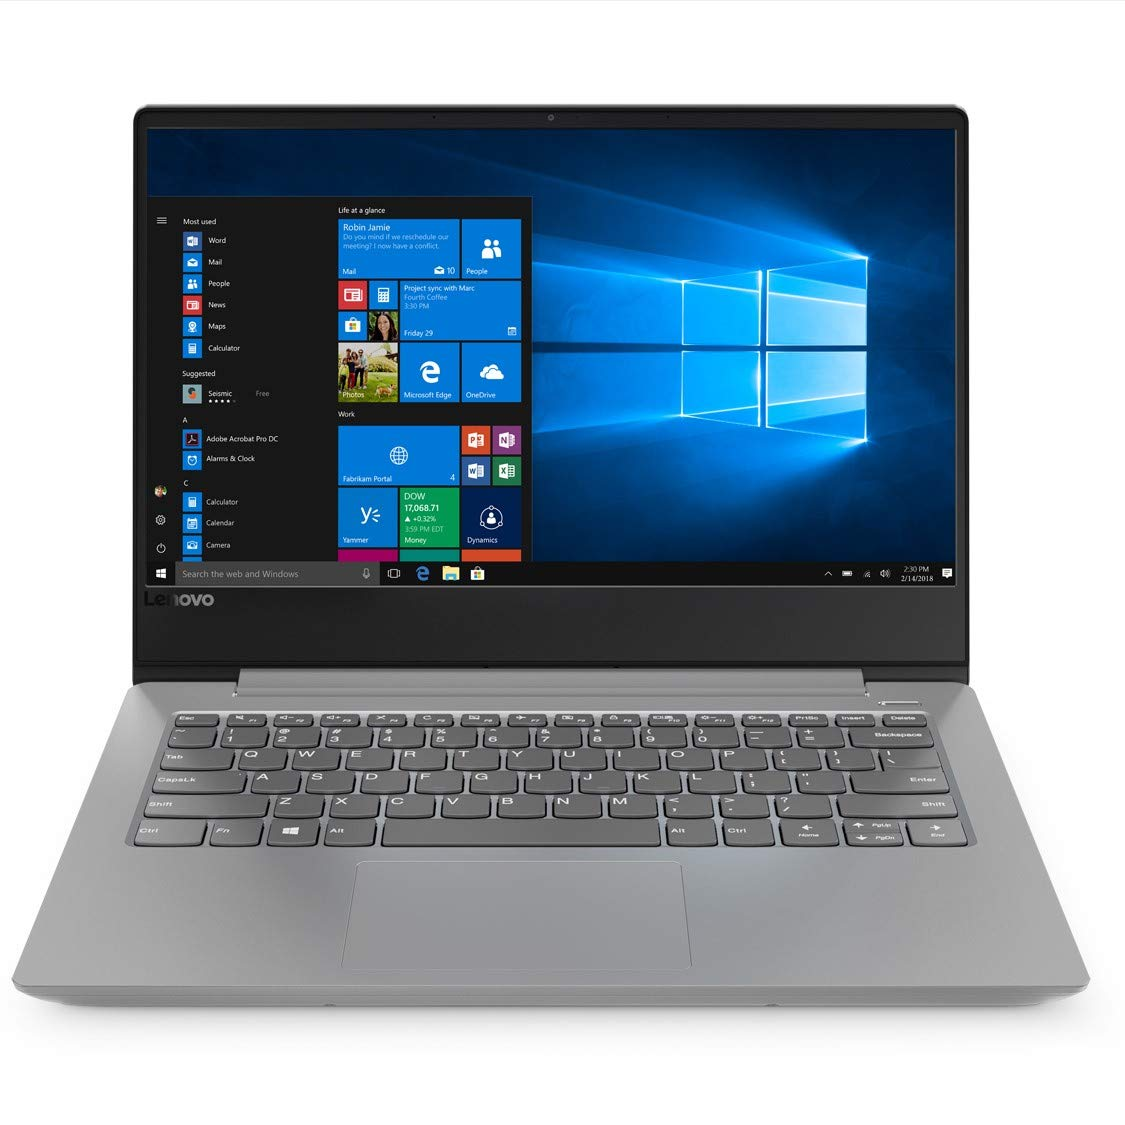 Buy Lenovo Ideapad 330s Amd A6 14 Inch Thin And Light Laptop 4gb Hard Drive On A Circuit Board Clock Awesome Combination 1tb Hdd Windows 10 Home Platinum Grey 16kg 81f8001cin Online At Low Prices In India